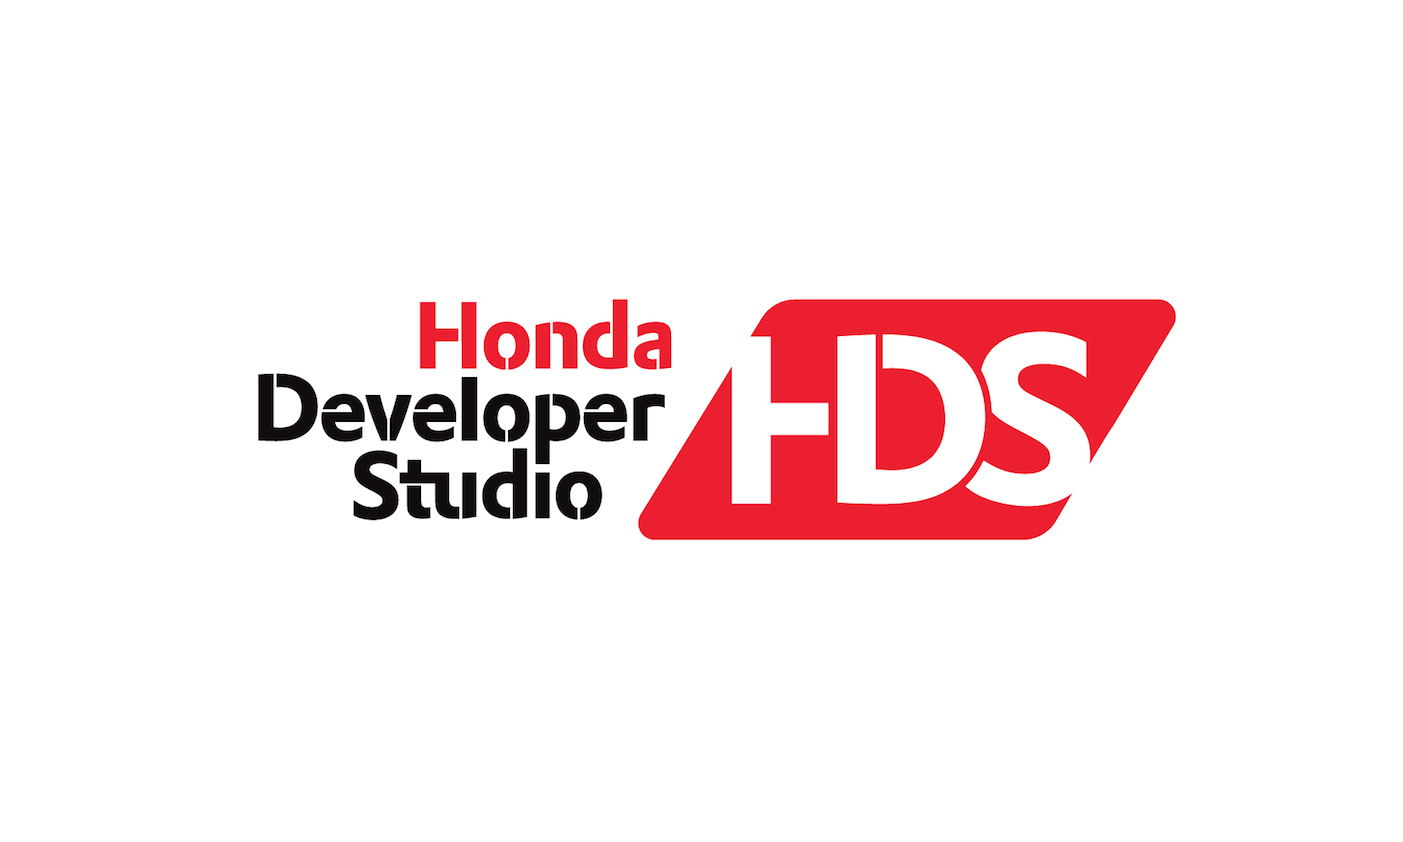 honda Developer Studio